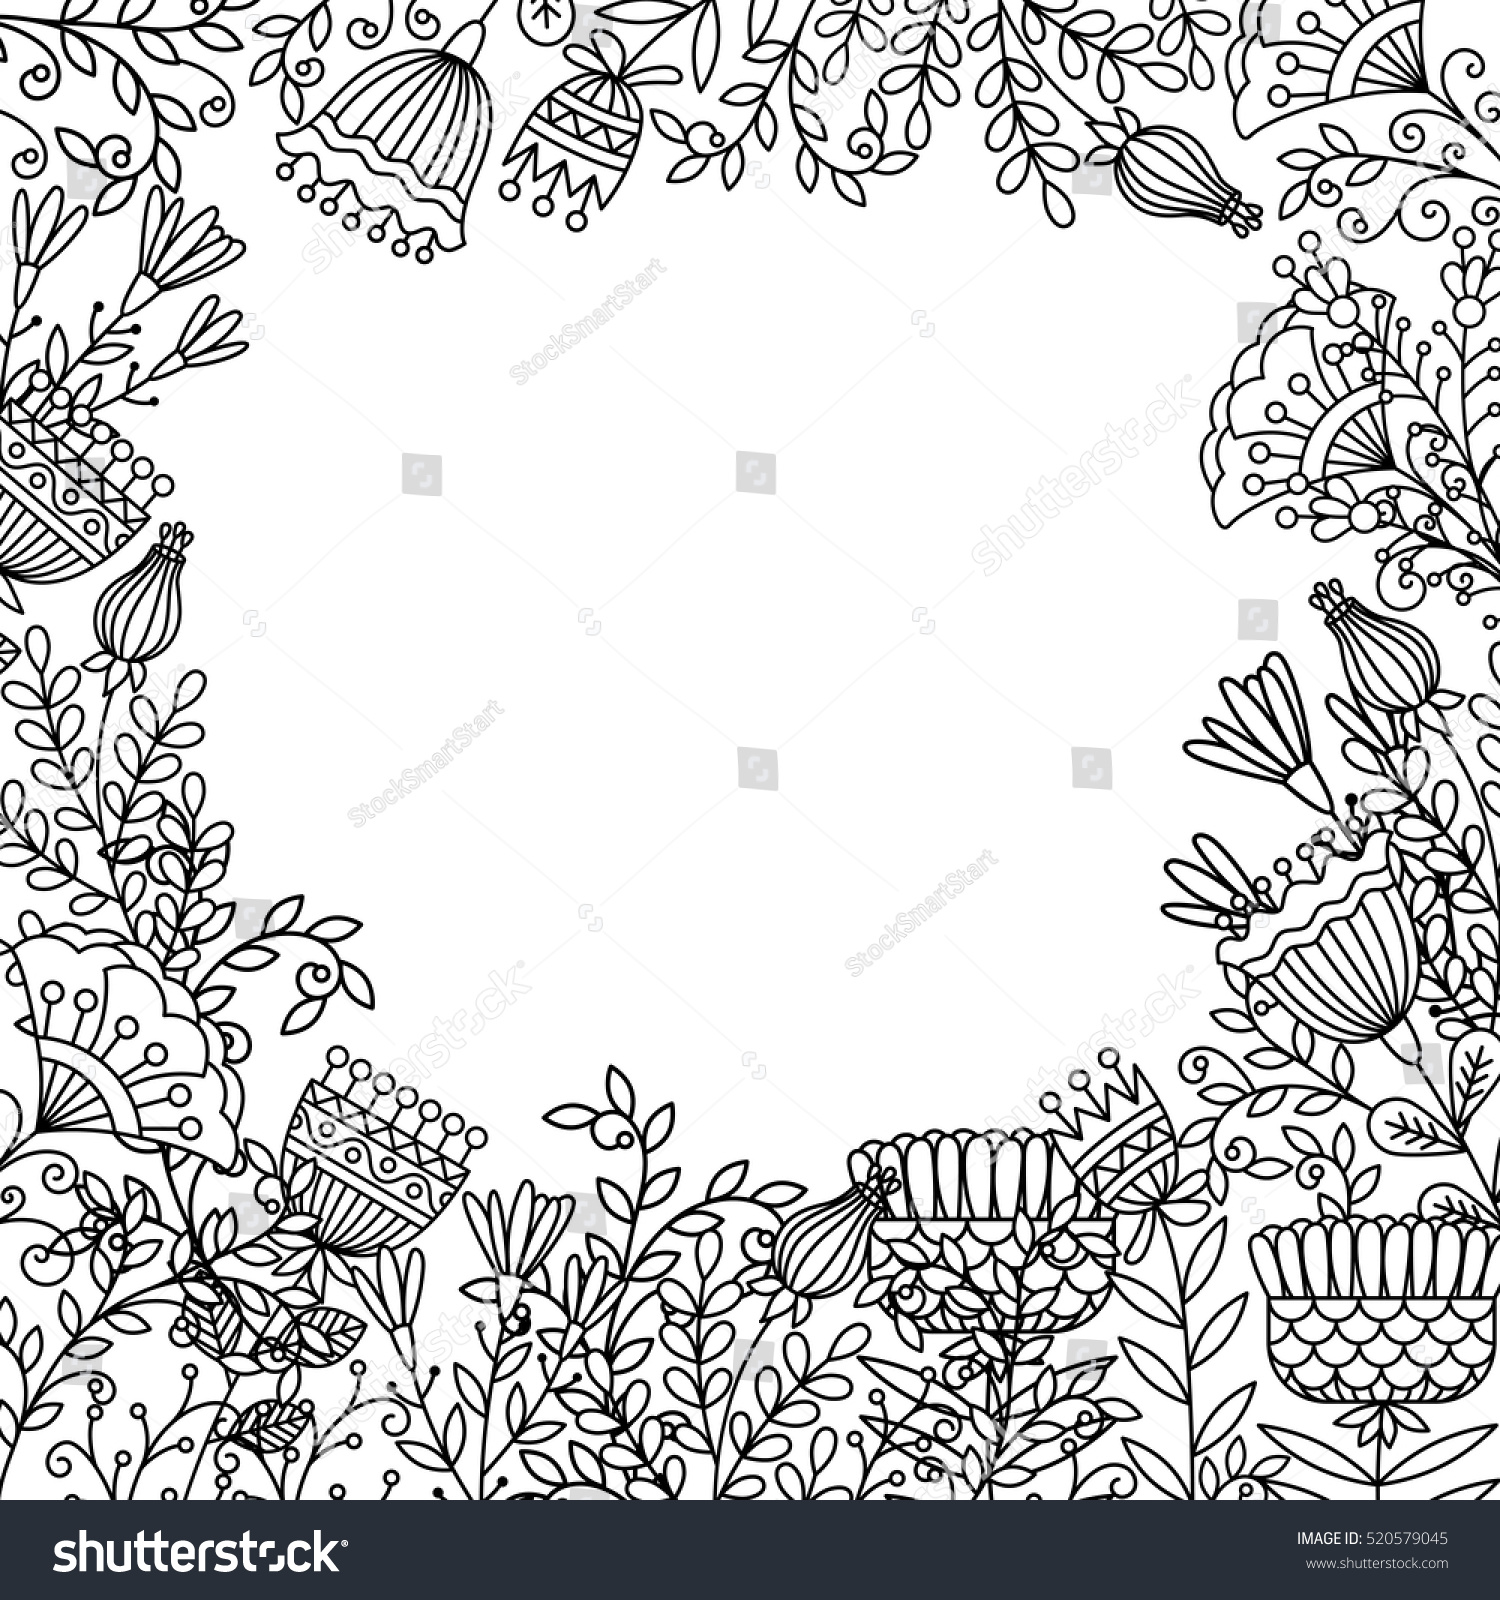 coloring page design doodle flowers space stock vector 520579045